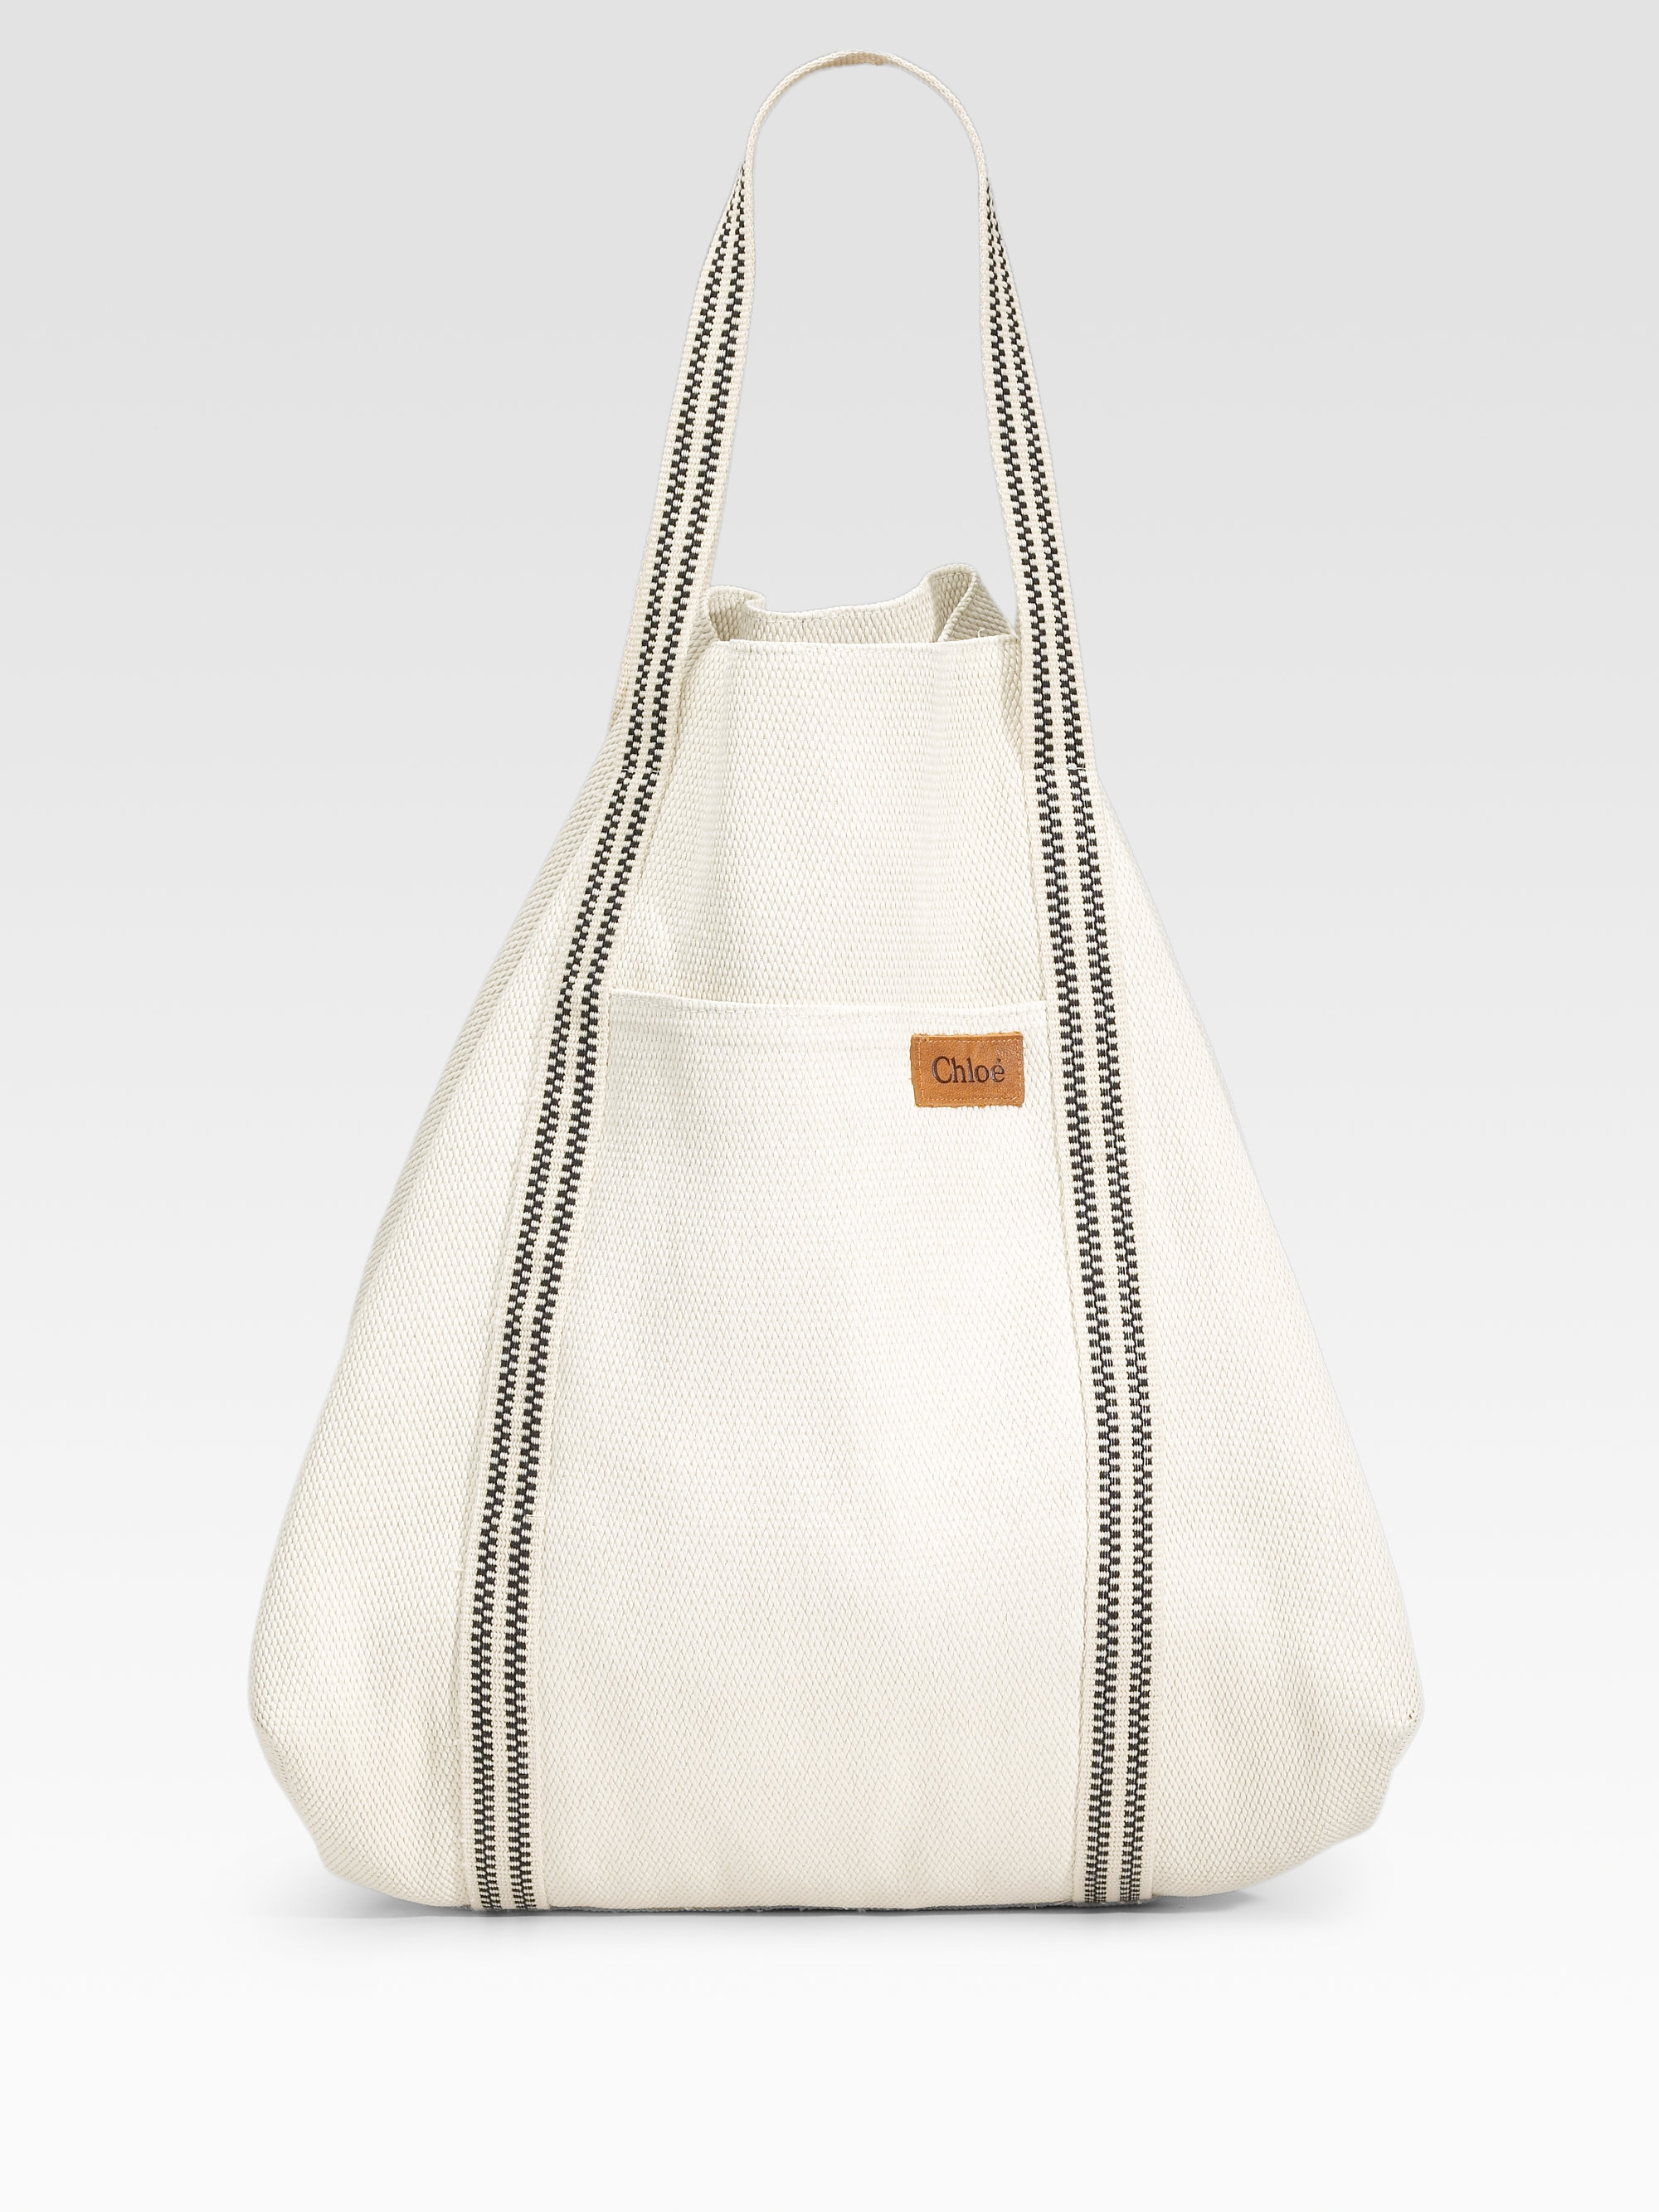 Chloé Striped Canvas Beach Tote in White | Lyst